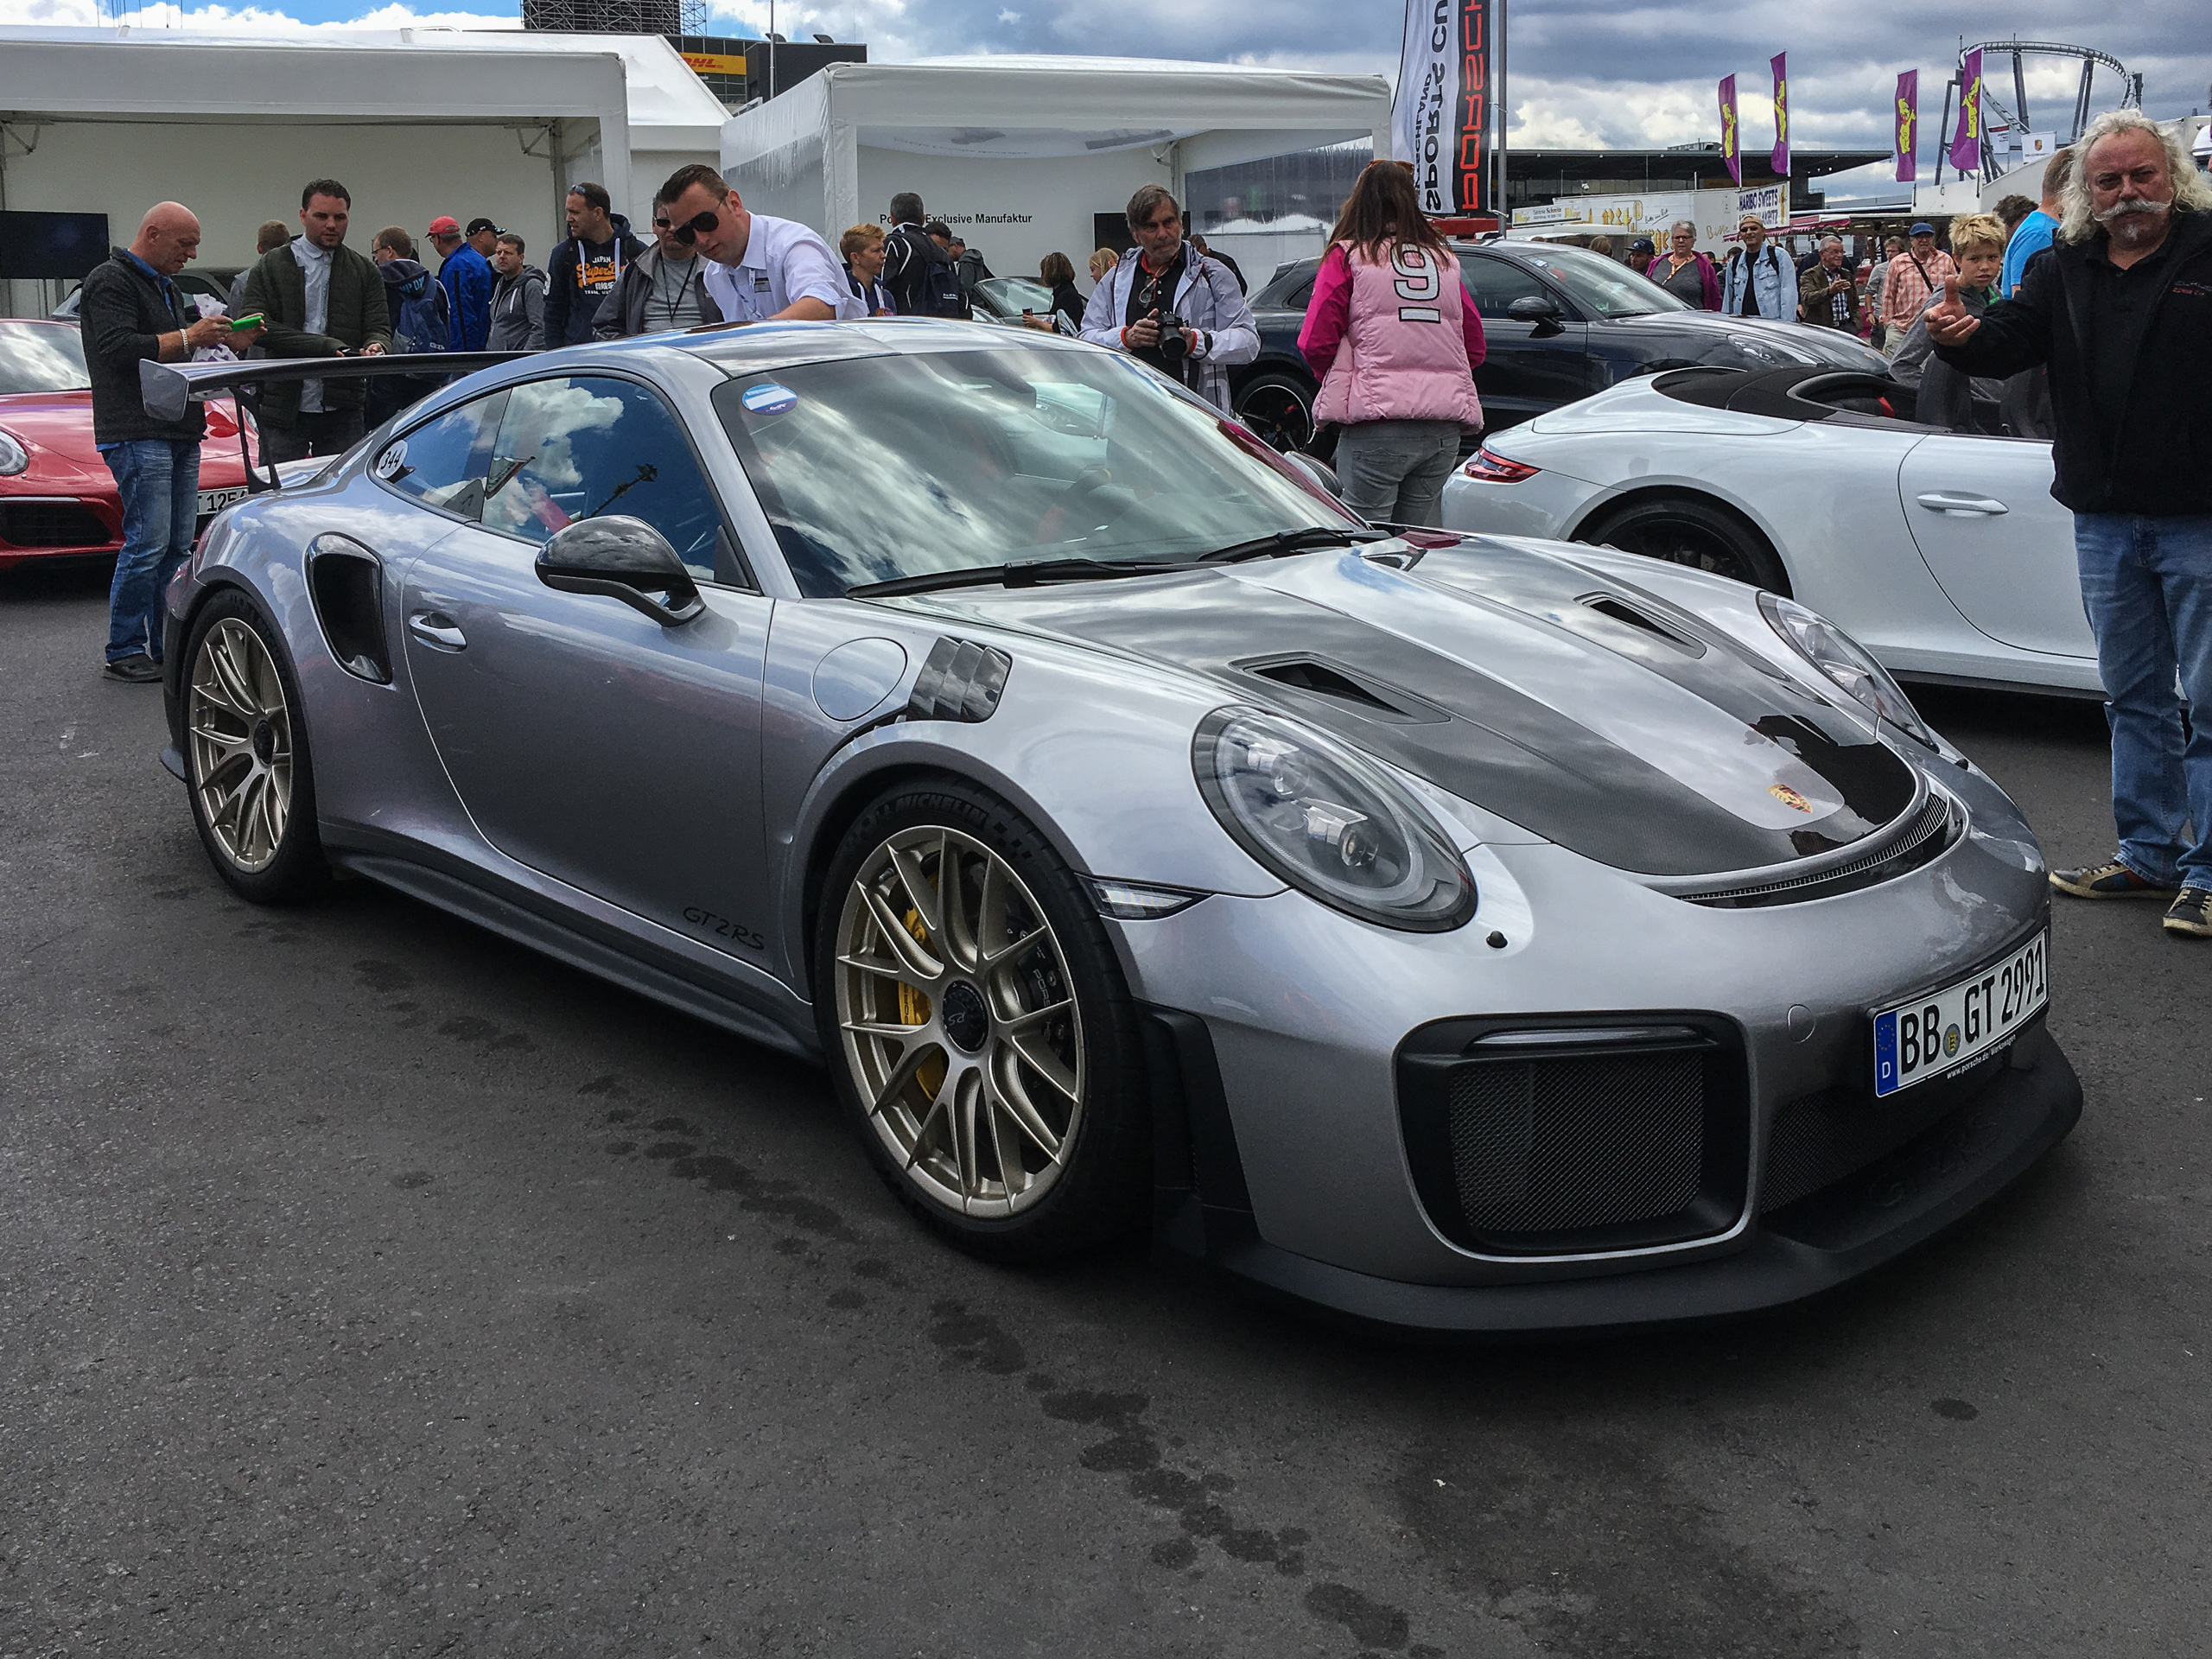 file porsche 911 991 gt2 rs at 6 hours of nuerburgring wec wikimedia commons. Black Bedroom Furniture Sets. Home Design Ideas